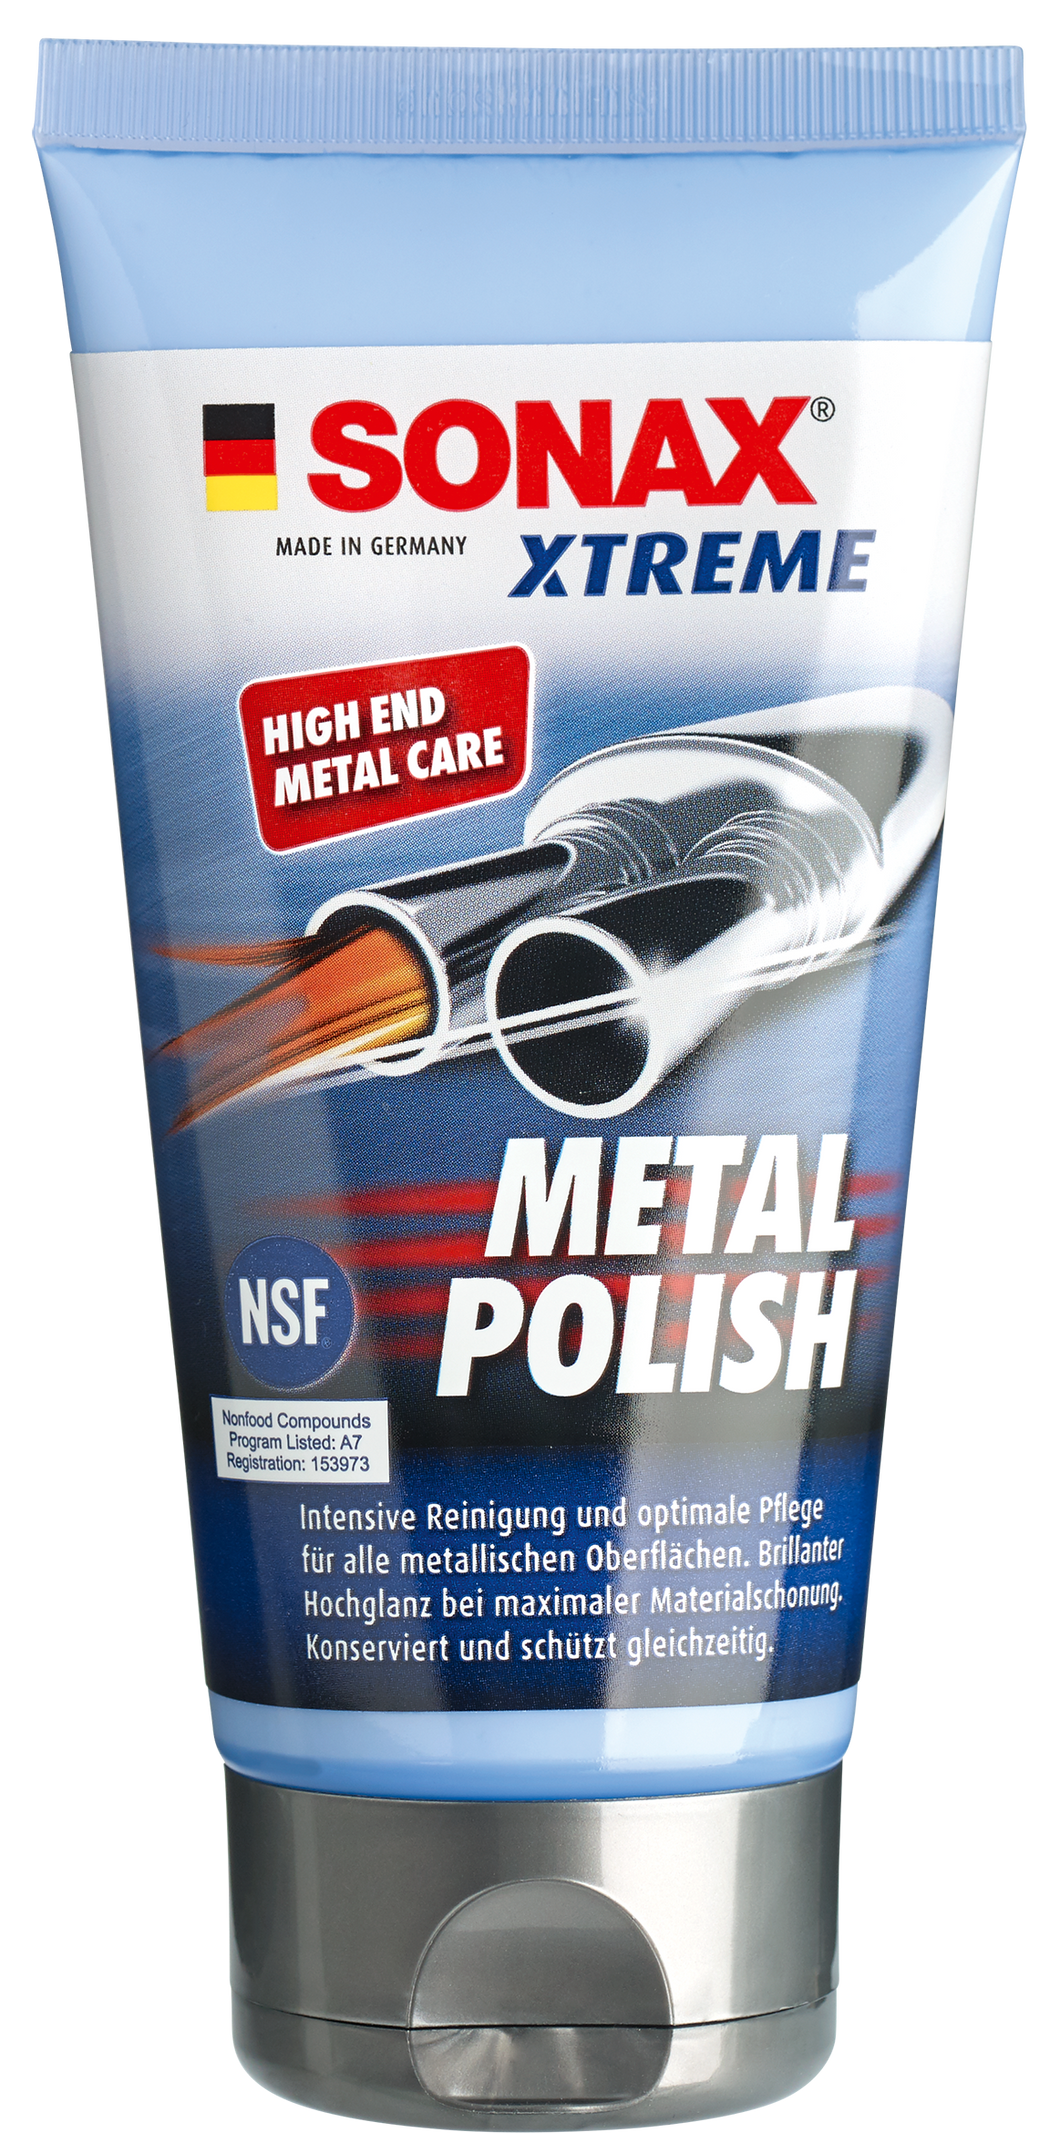 XTREME Metal Polish, cleans prevents tarnishing and shines.